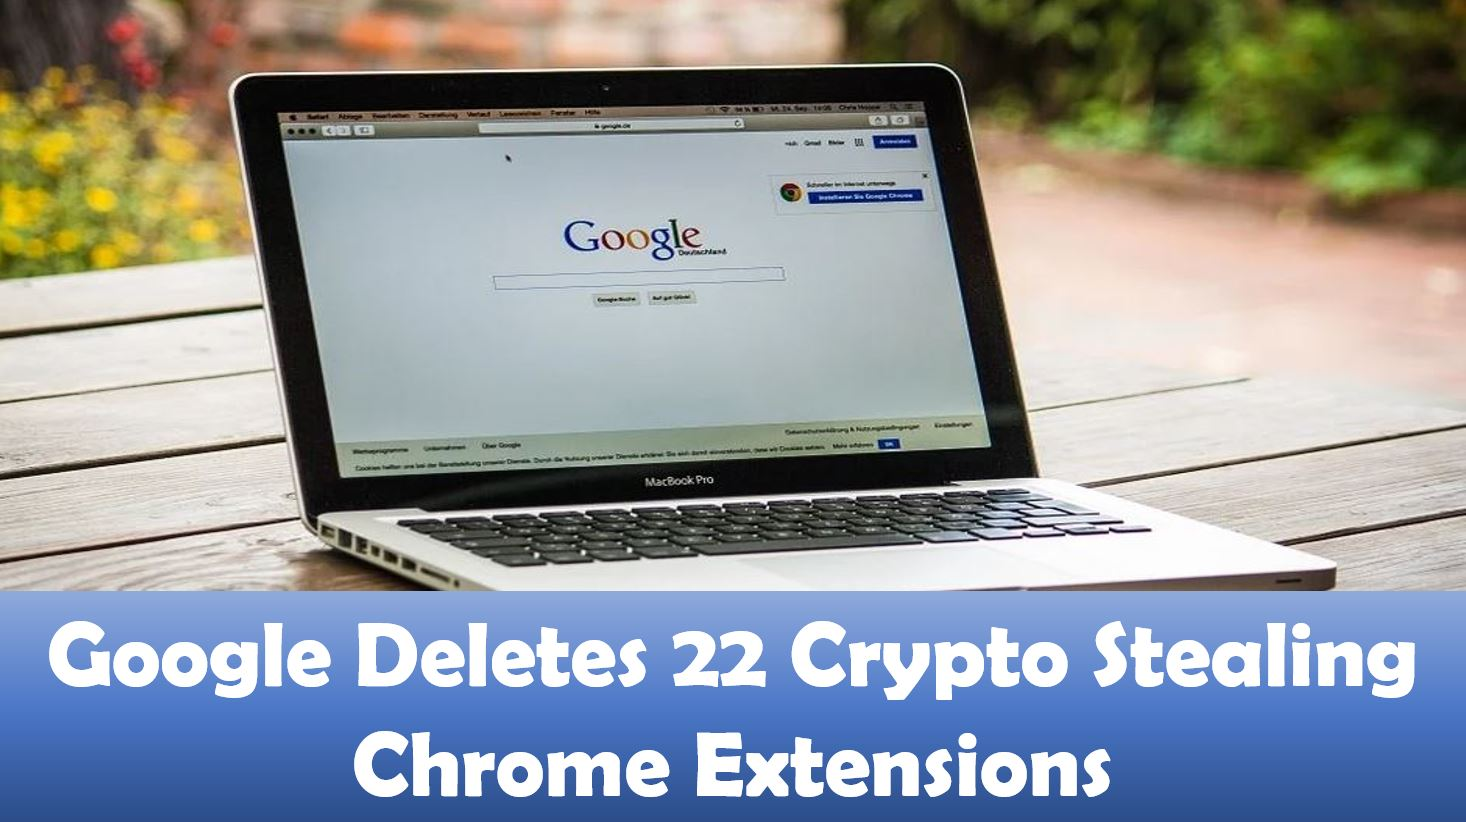 Google Deletes 22 Crypto Stealing Chrome Extensions